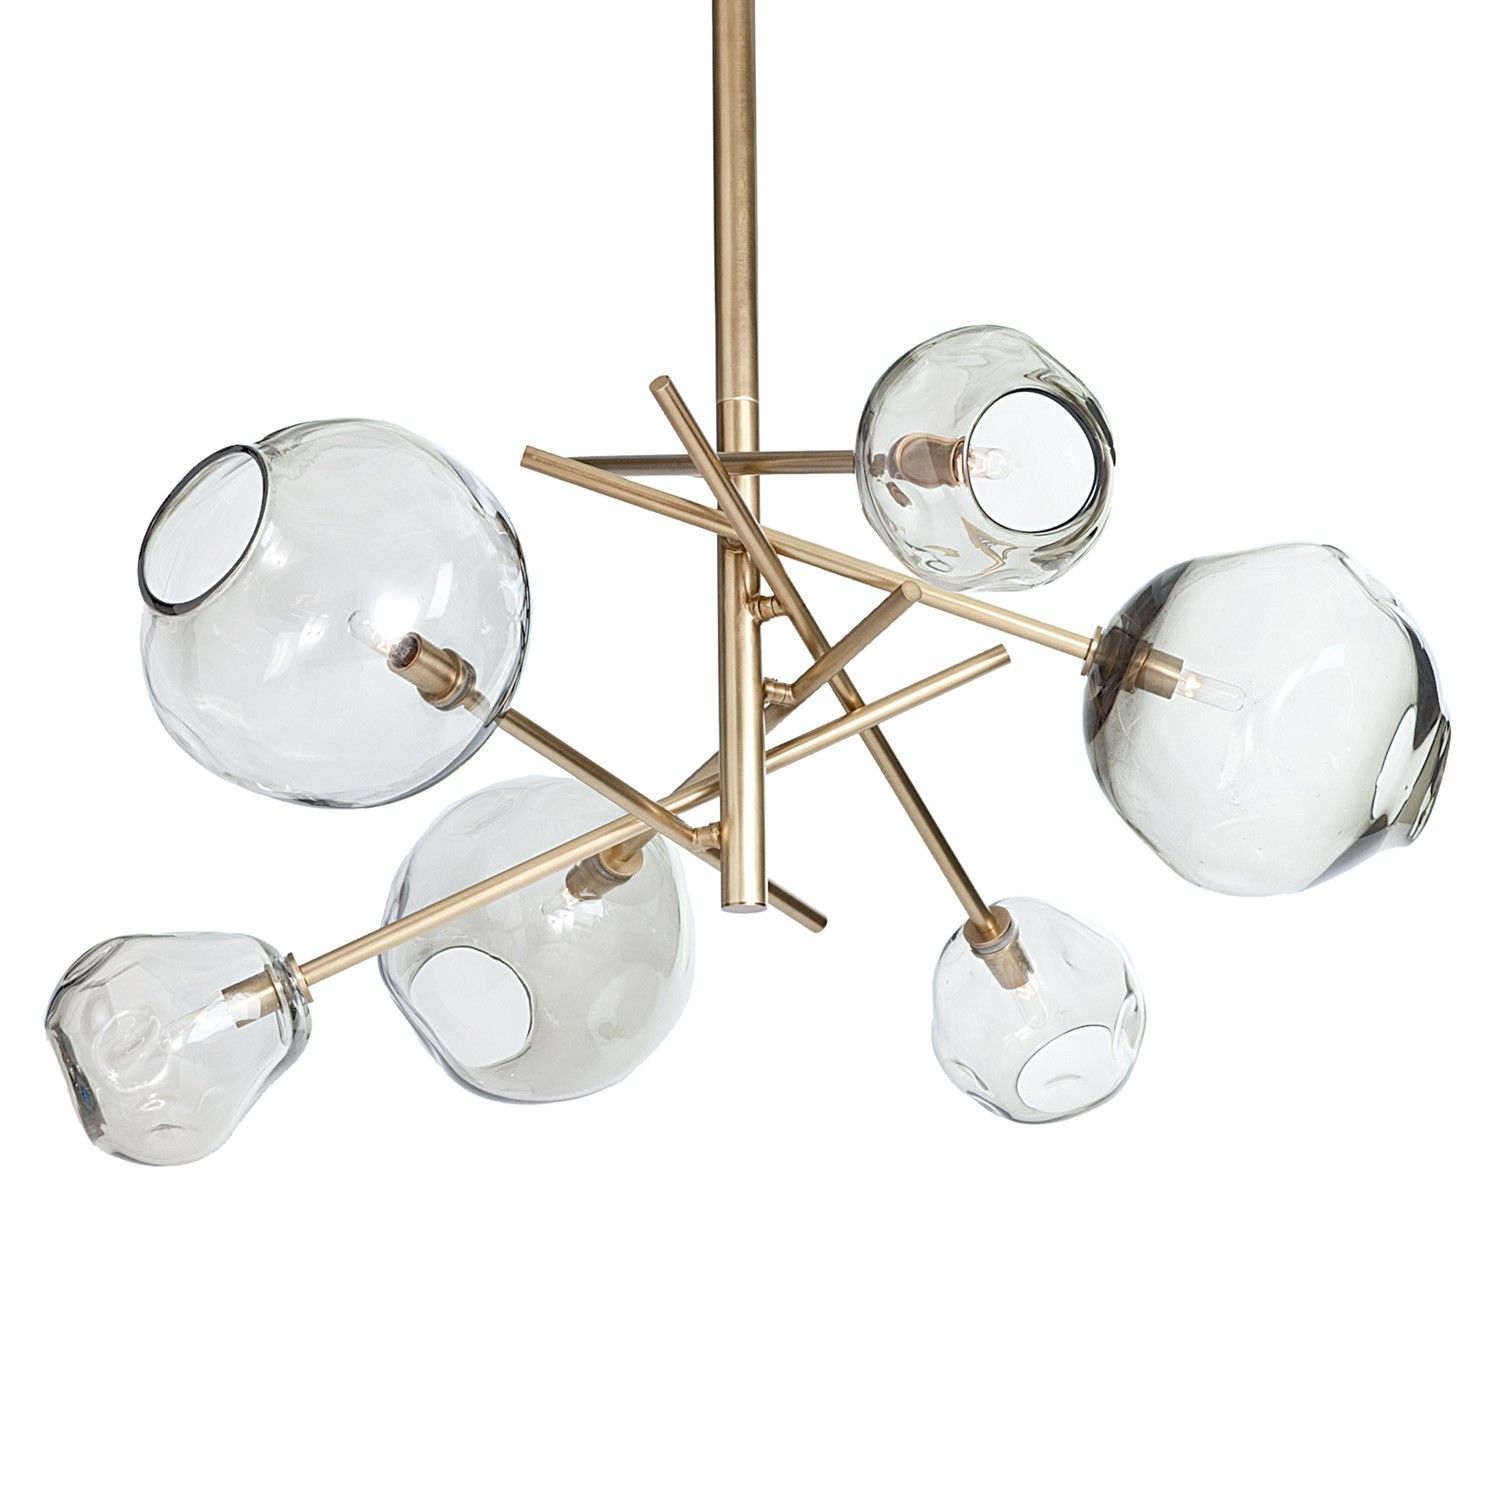 design andrew regina lamps brass concrete lighting and table lamp gear